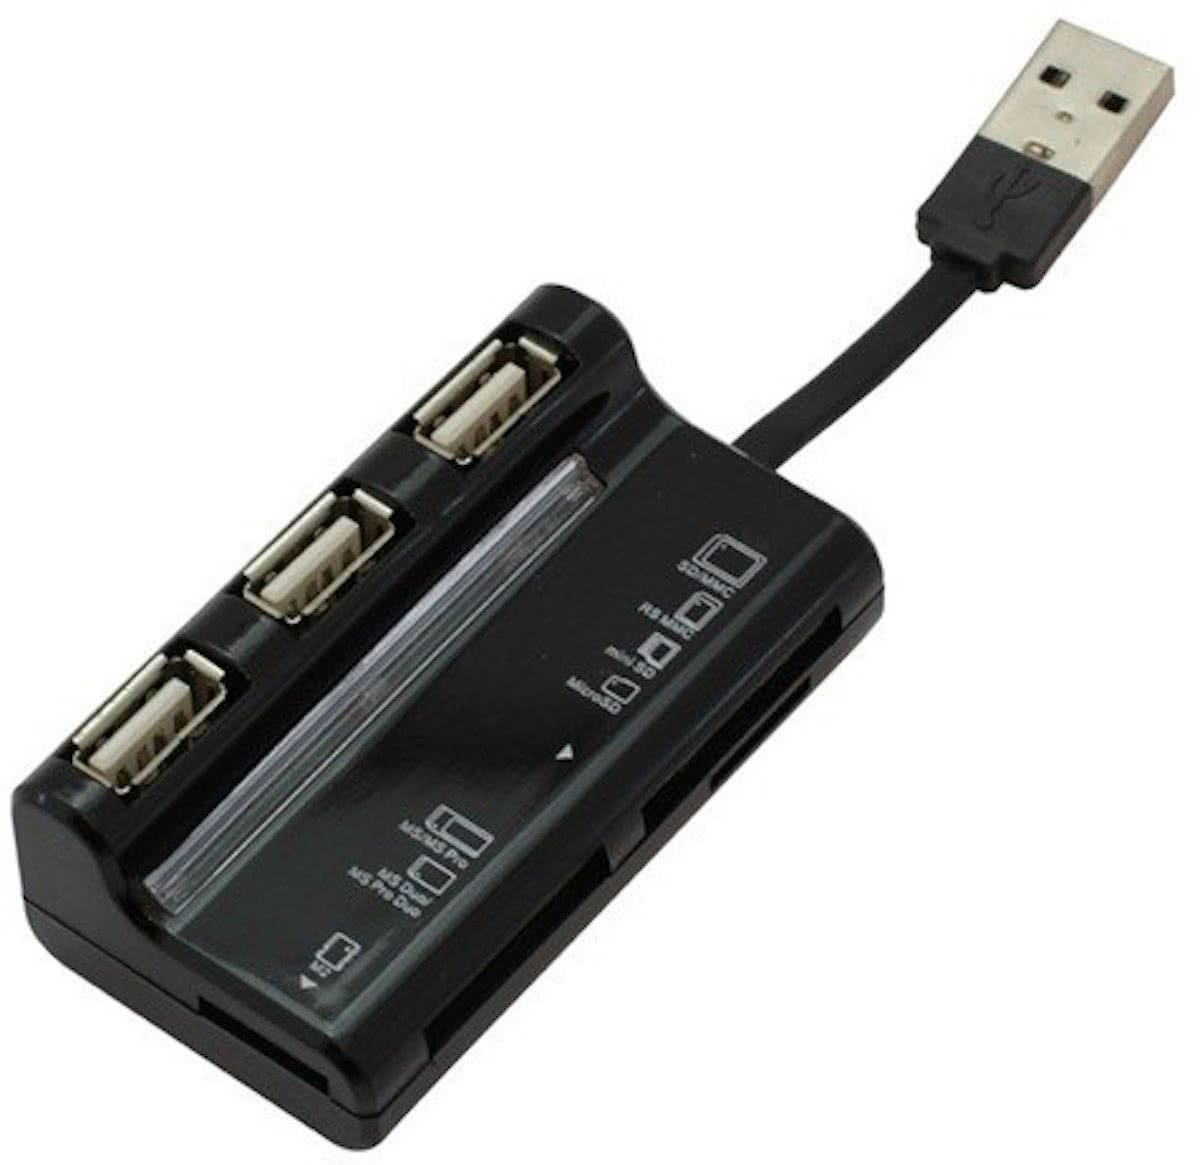 USB-kaartlezer alles-in-een en 3 port USB-hub USB 2.0 ON410